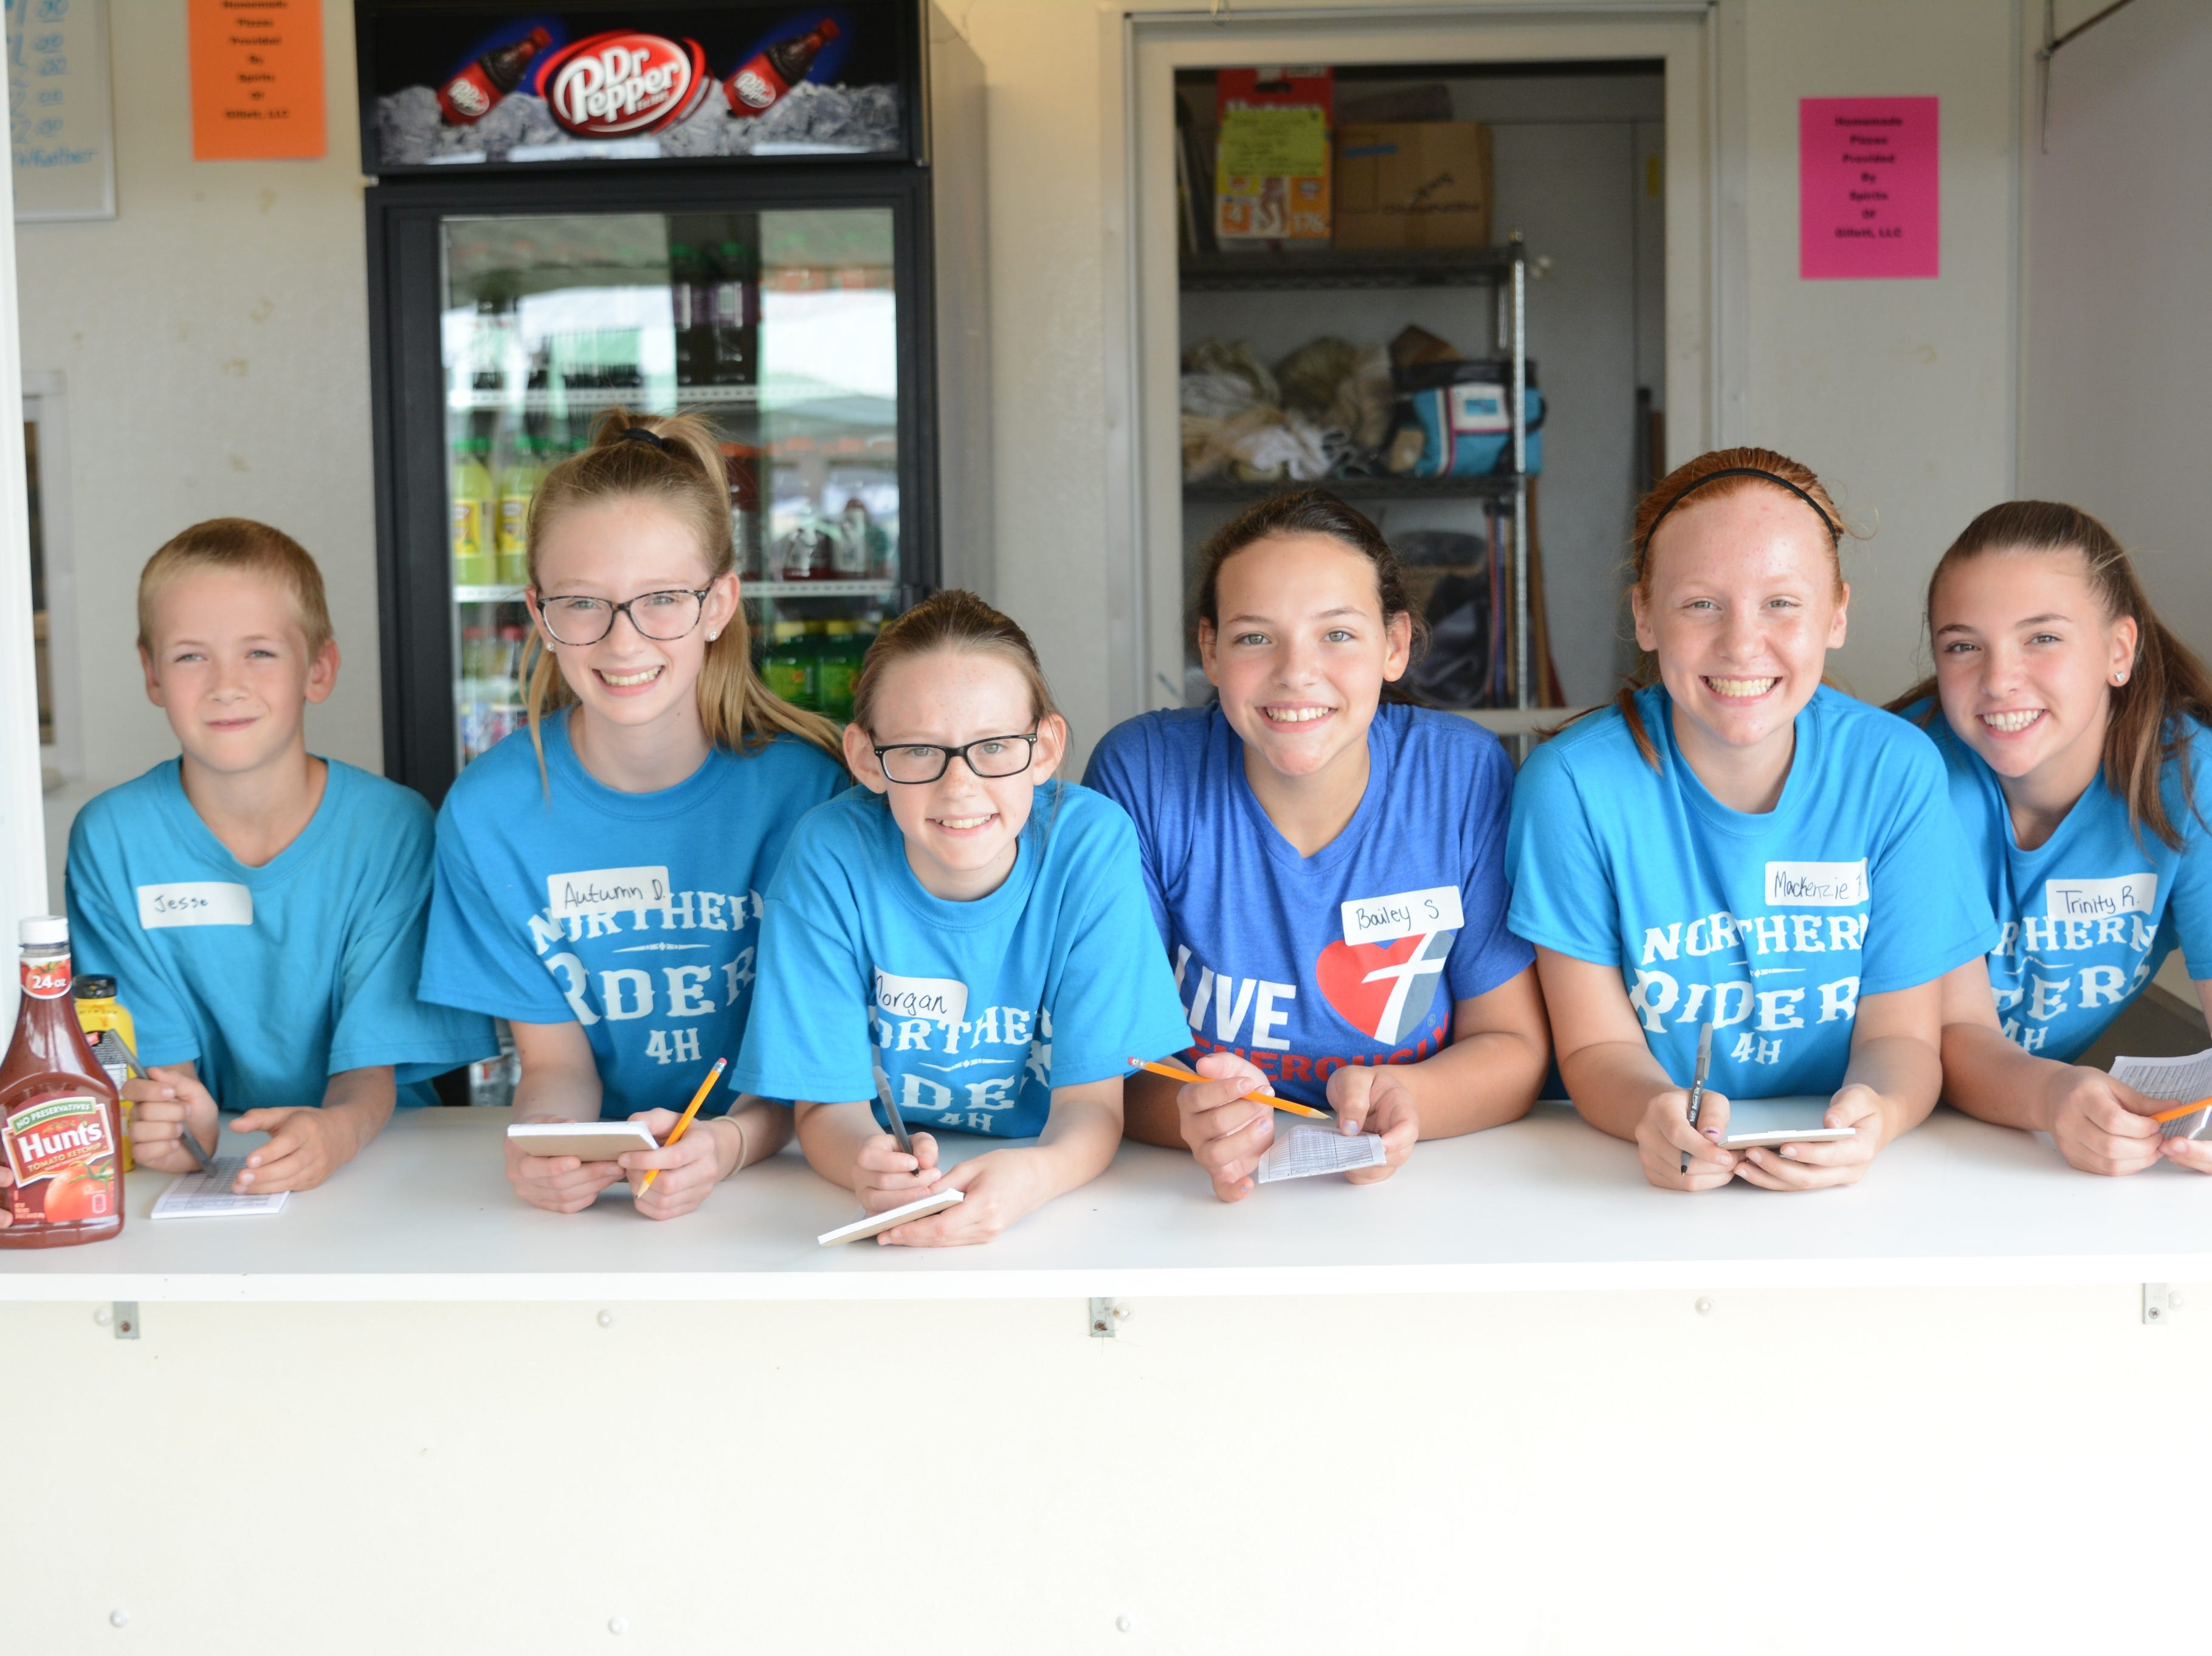 Members of the Northern Riders 4H Club are ready to take orders at the 4H Food Stand at the Oconto County Fair on Friday, Aug. 17. Proceeds supports programming, youth leadership and projects. From left are Jesse Telford, Autumn Dryja, Morgan Dryja, Bailey Stuart, Mackenzie Bailey, Trinity Remic.